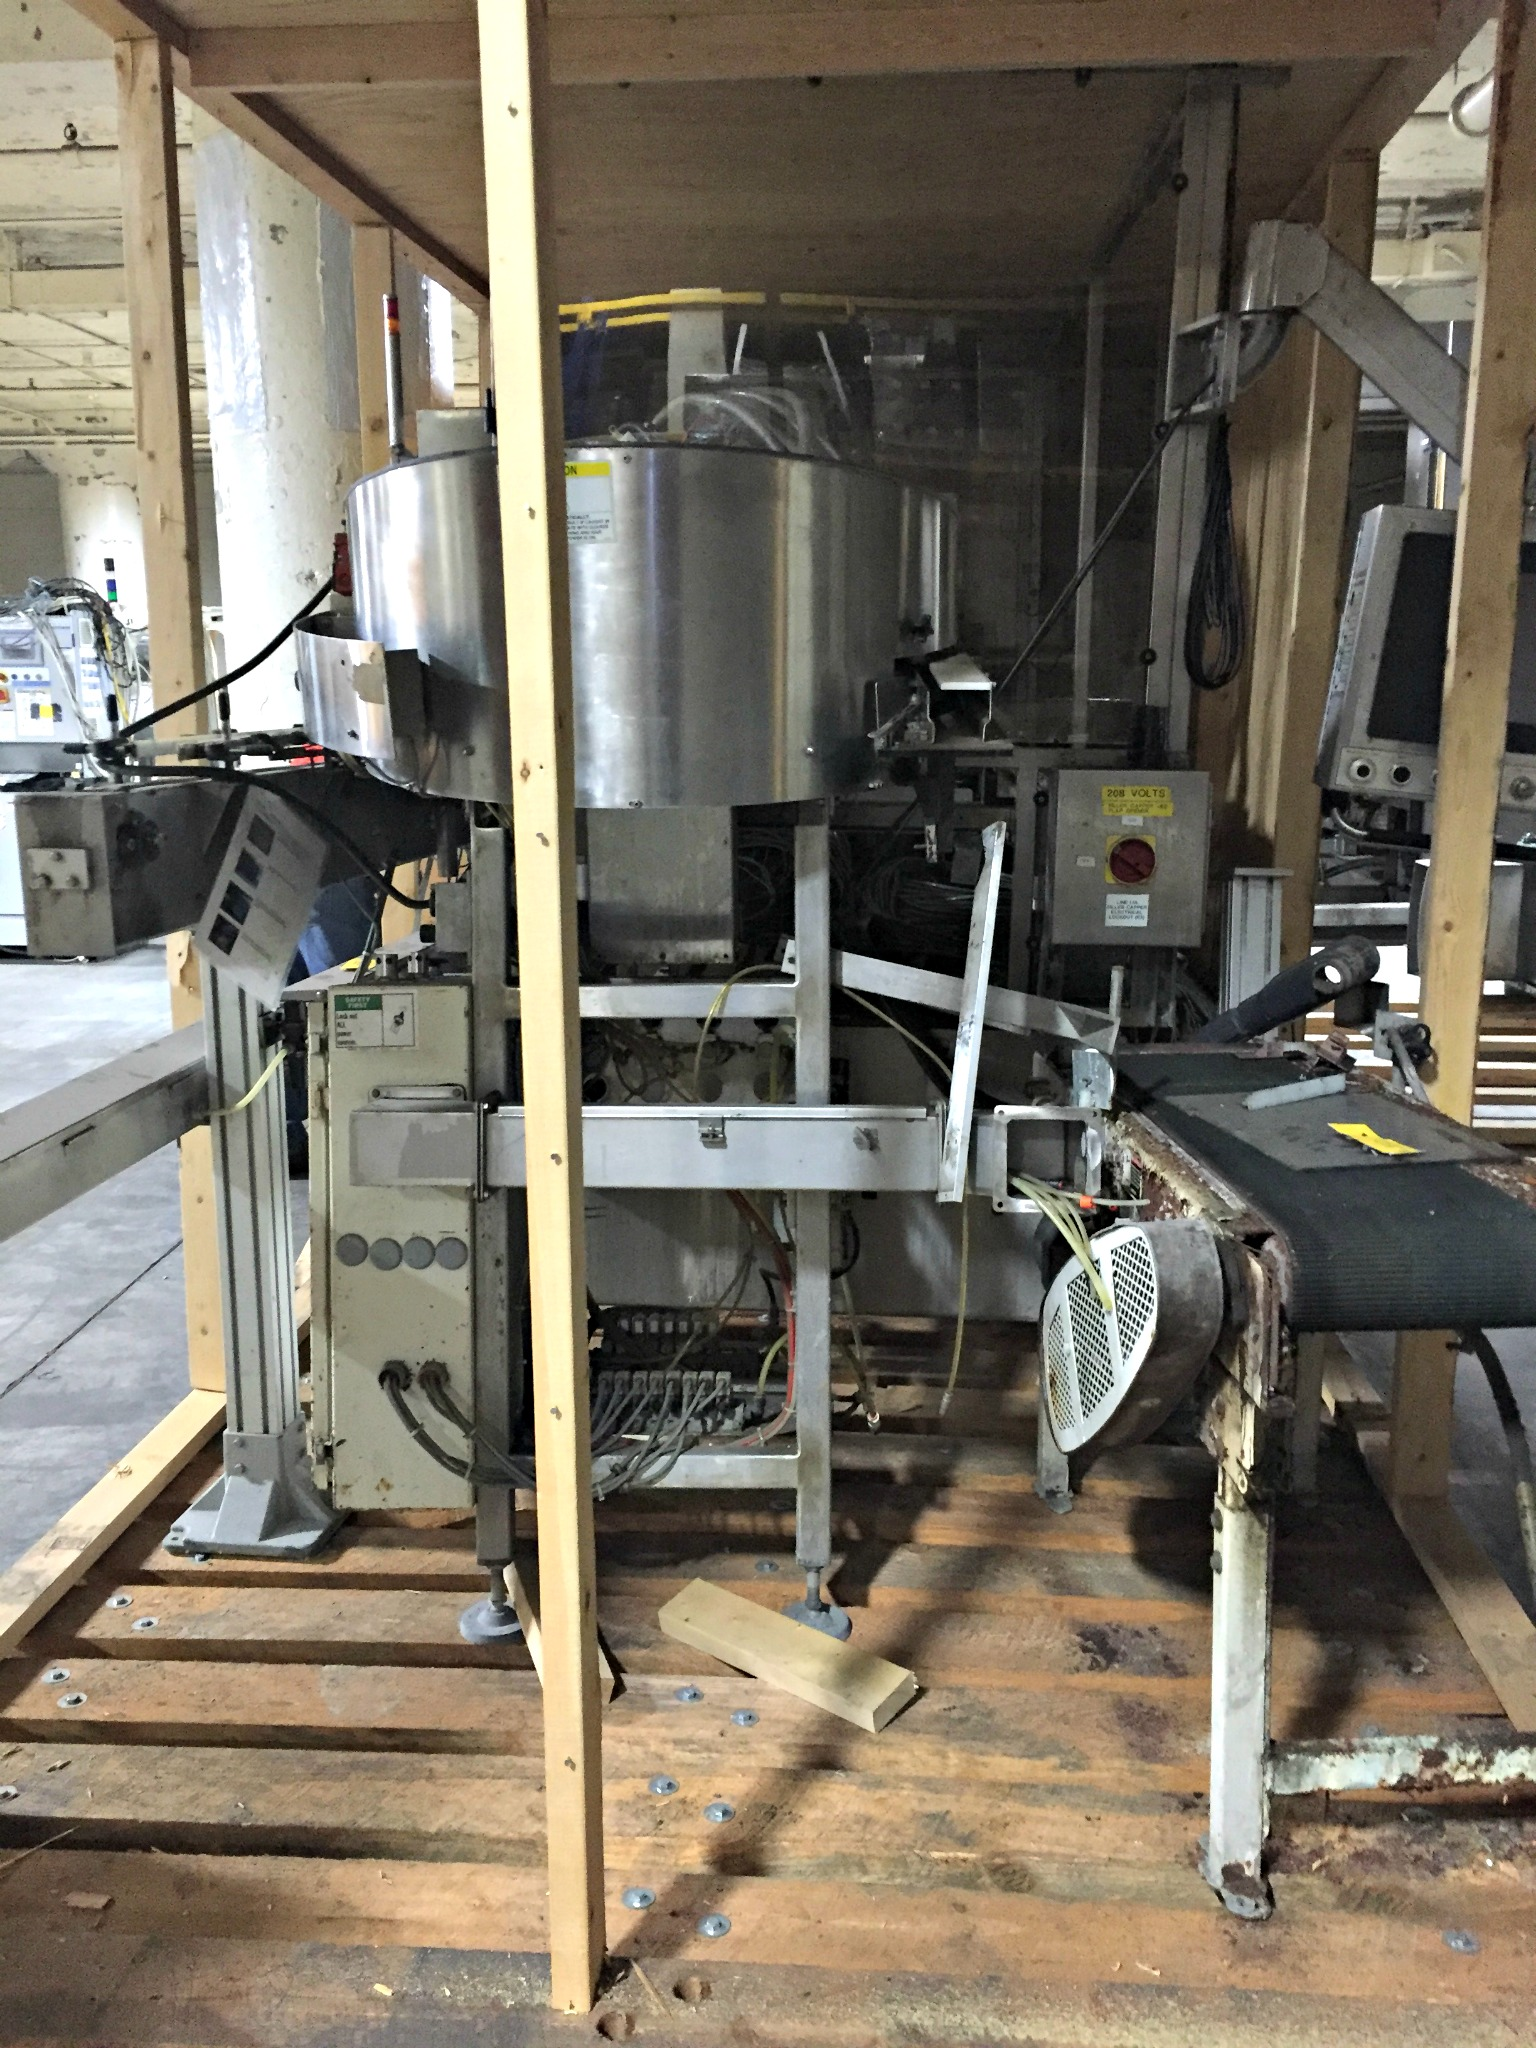 Lot 50 - Fillmatic Inline Filler with Farason Cap Sorter Feeder sn: J15797 / Cap Coder :equipment located